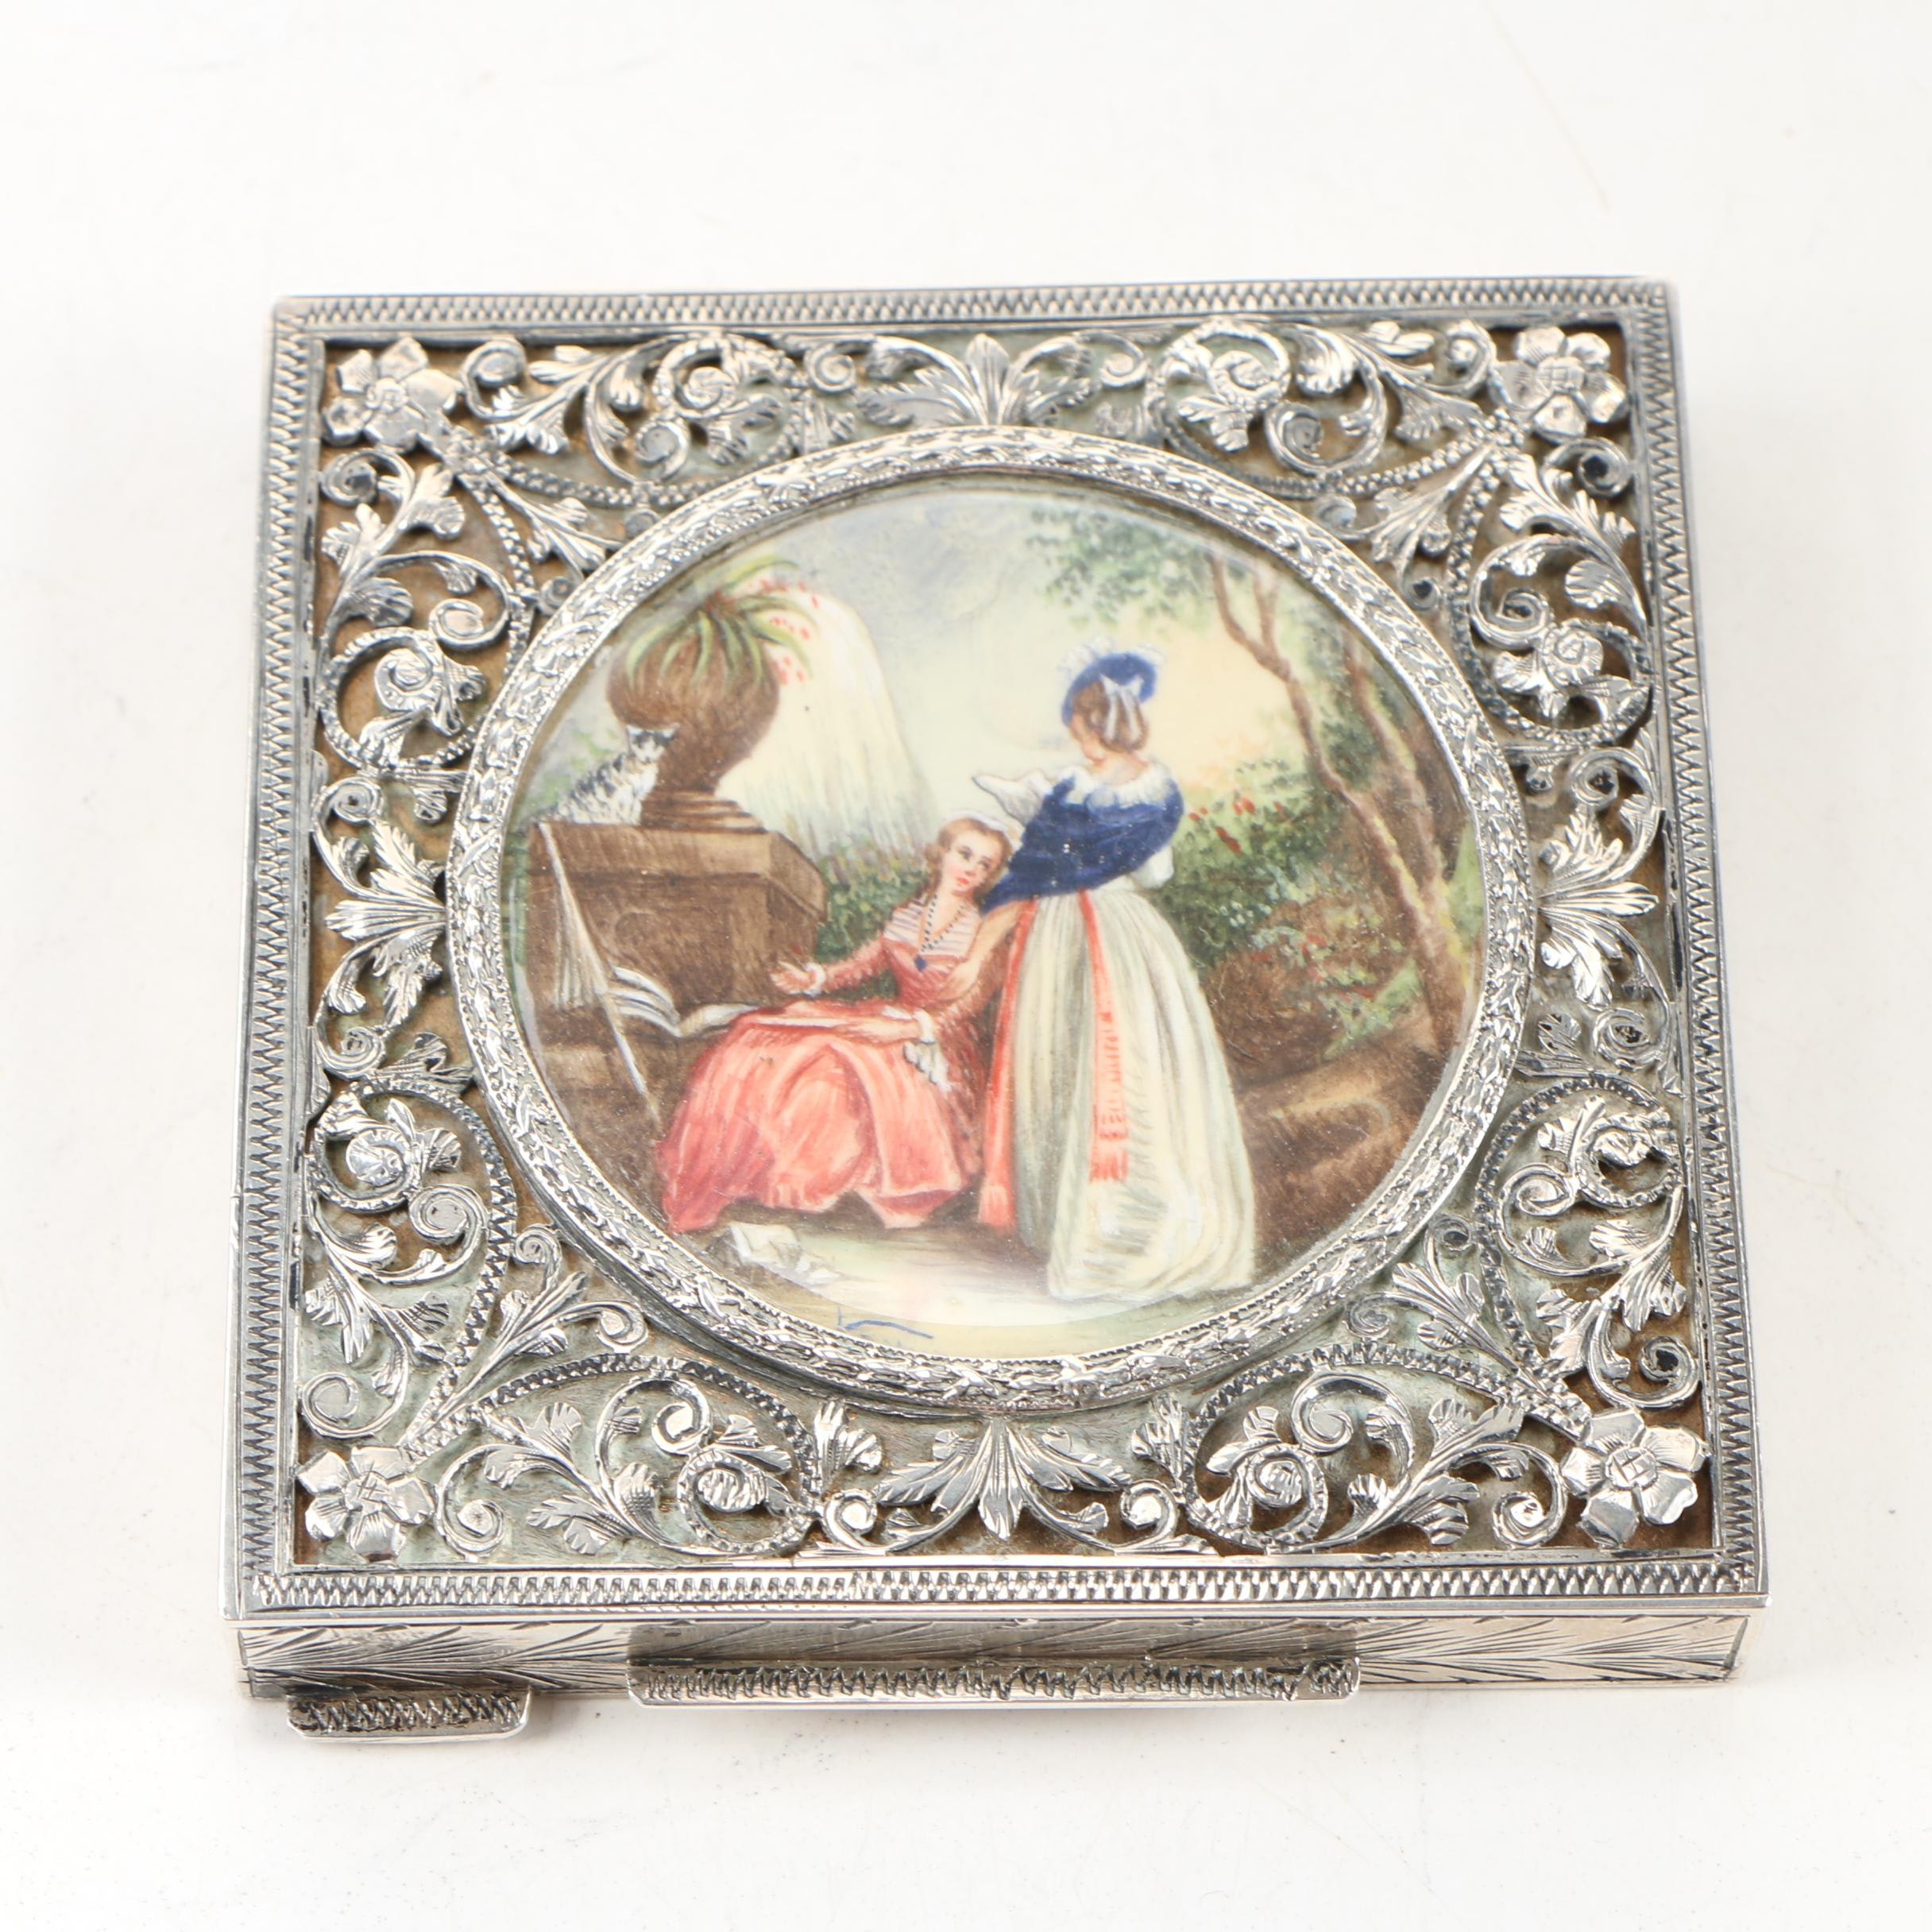 Italian 800 Silver Powder Compact with Inset Painting, Early 20th Century